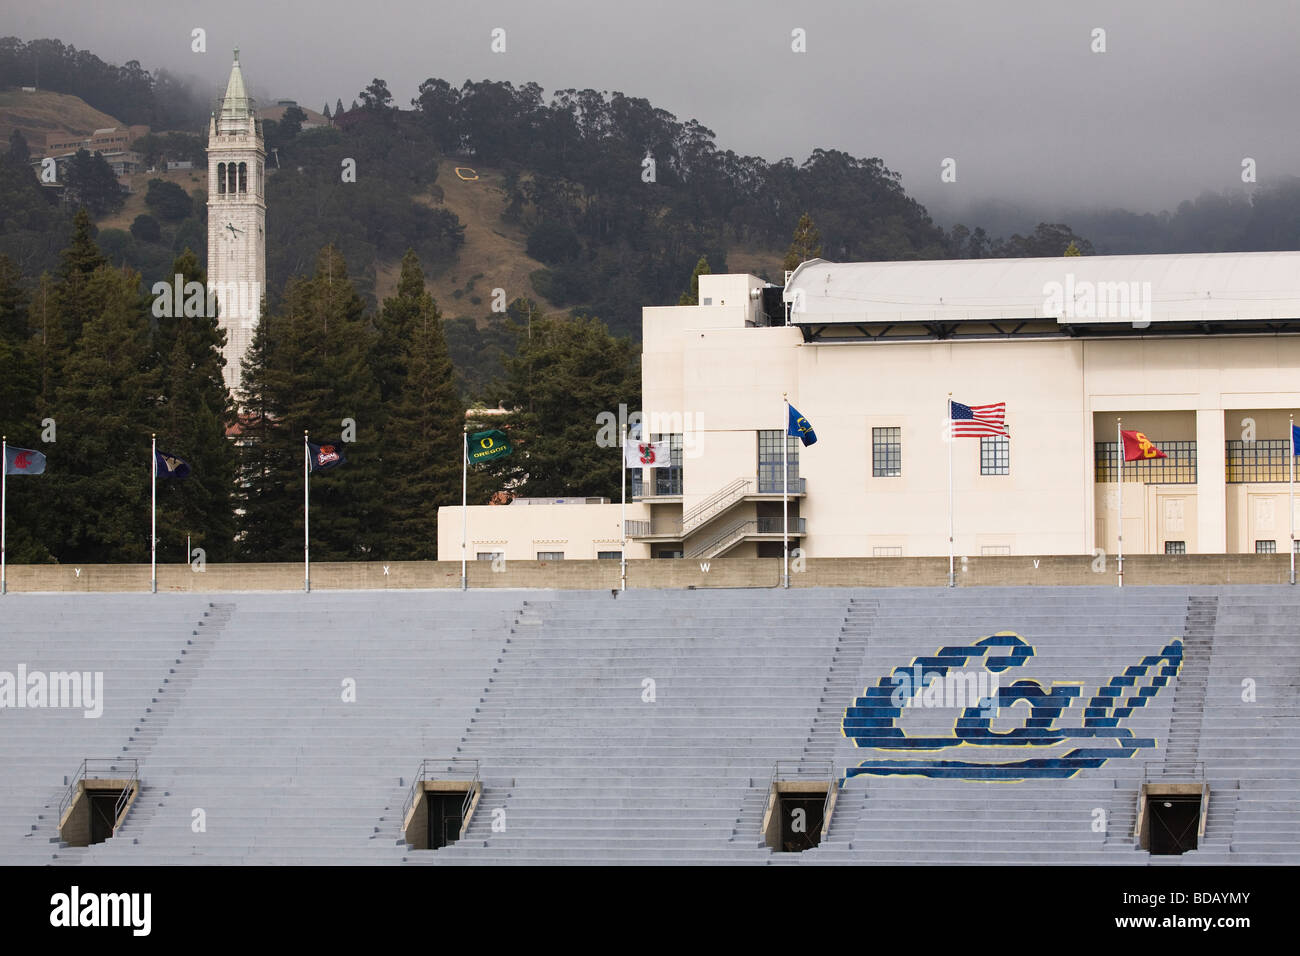 University of California at Berkeley's Sather Tower with Edwards Stadium and the Recreational Sports Facility - Stock Image